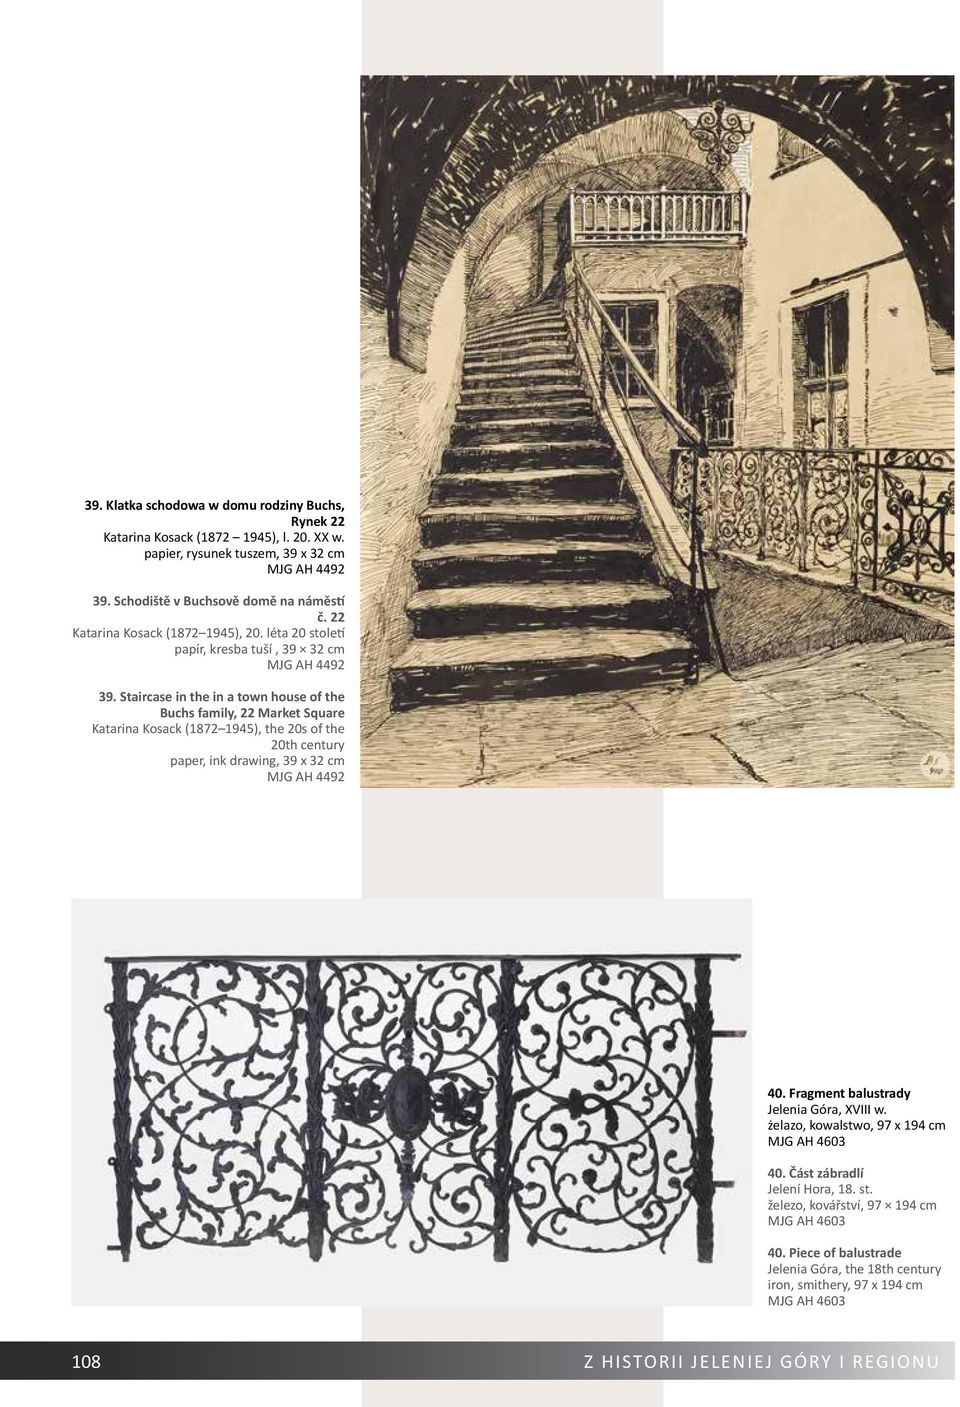 Staircase in the in a town house of the Buchs family, 22 Market Square Katarina Kosack (1872 1945), the 20s of the 20th century paper, ink drawing, 39 x 32 cm MJG AH 4492 40.